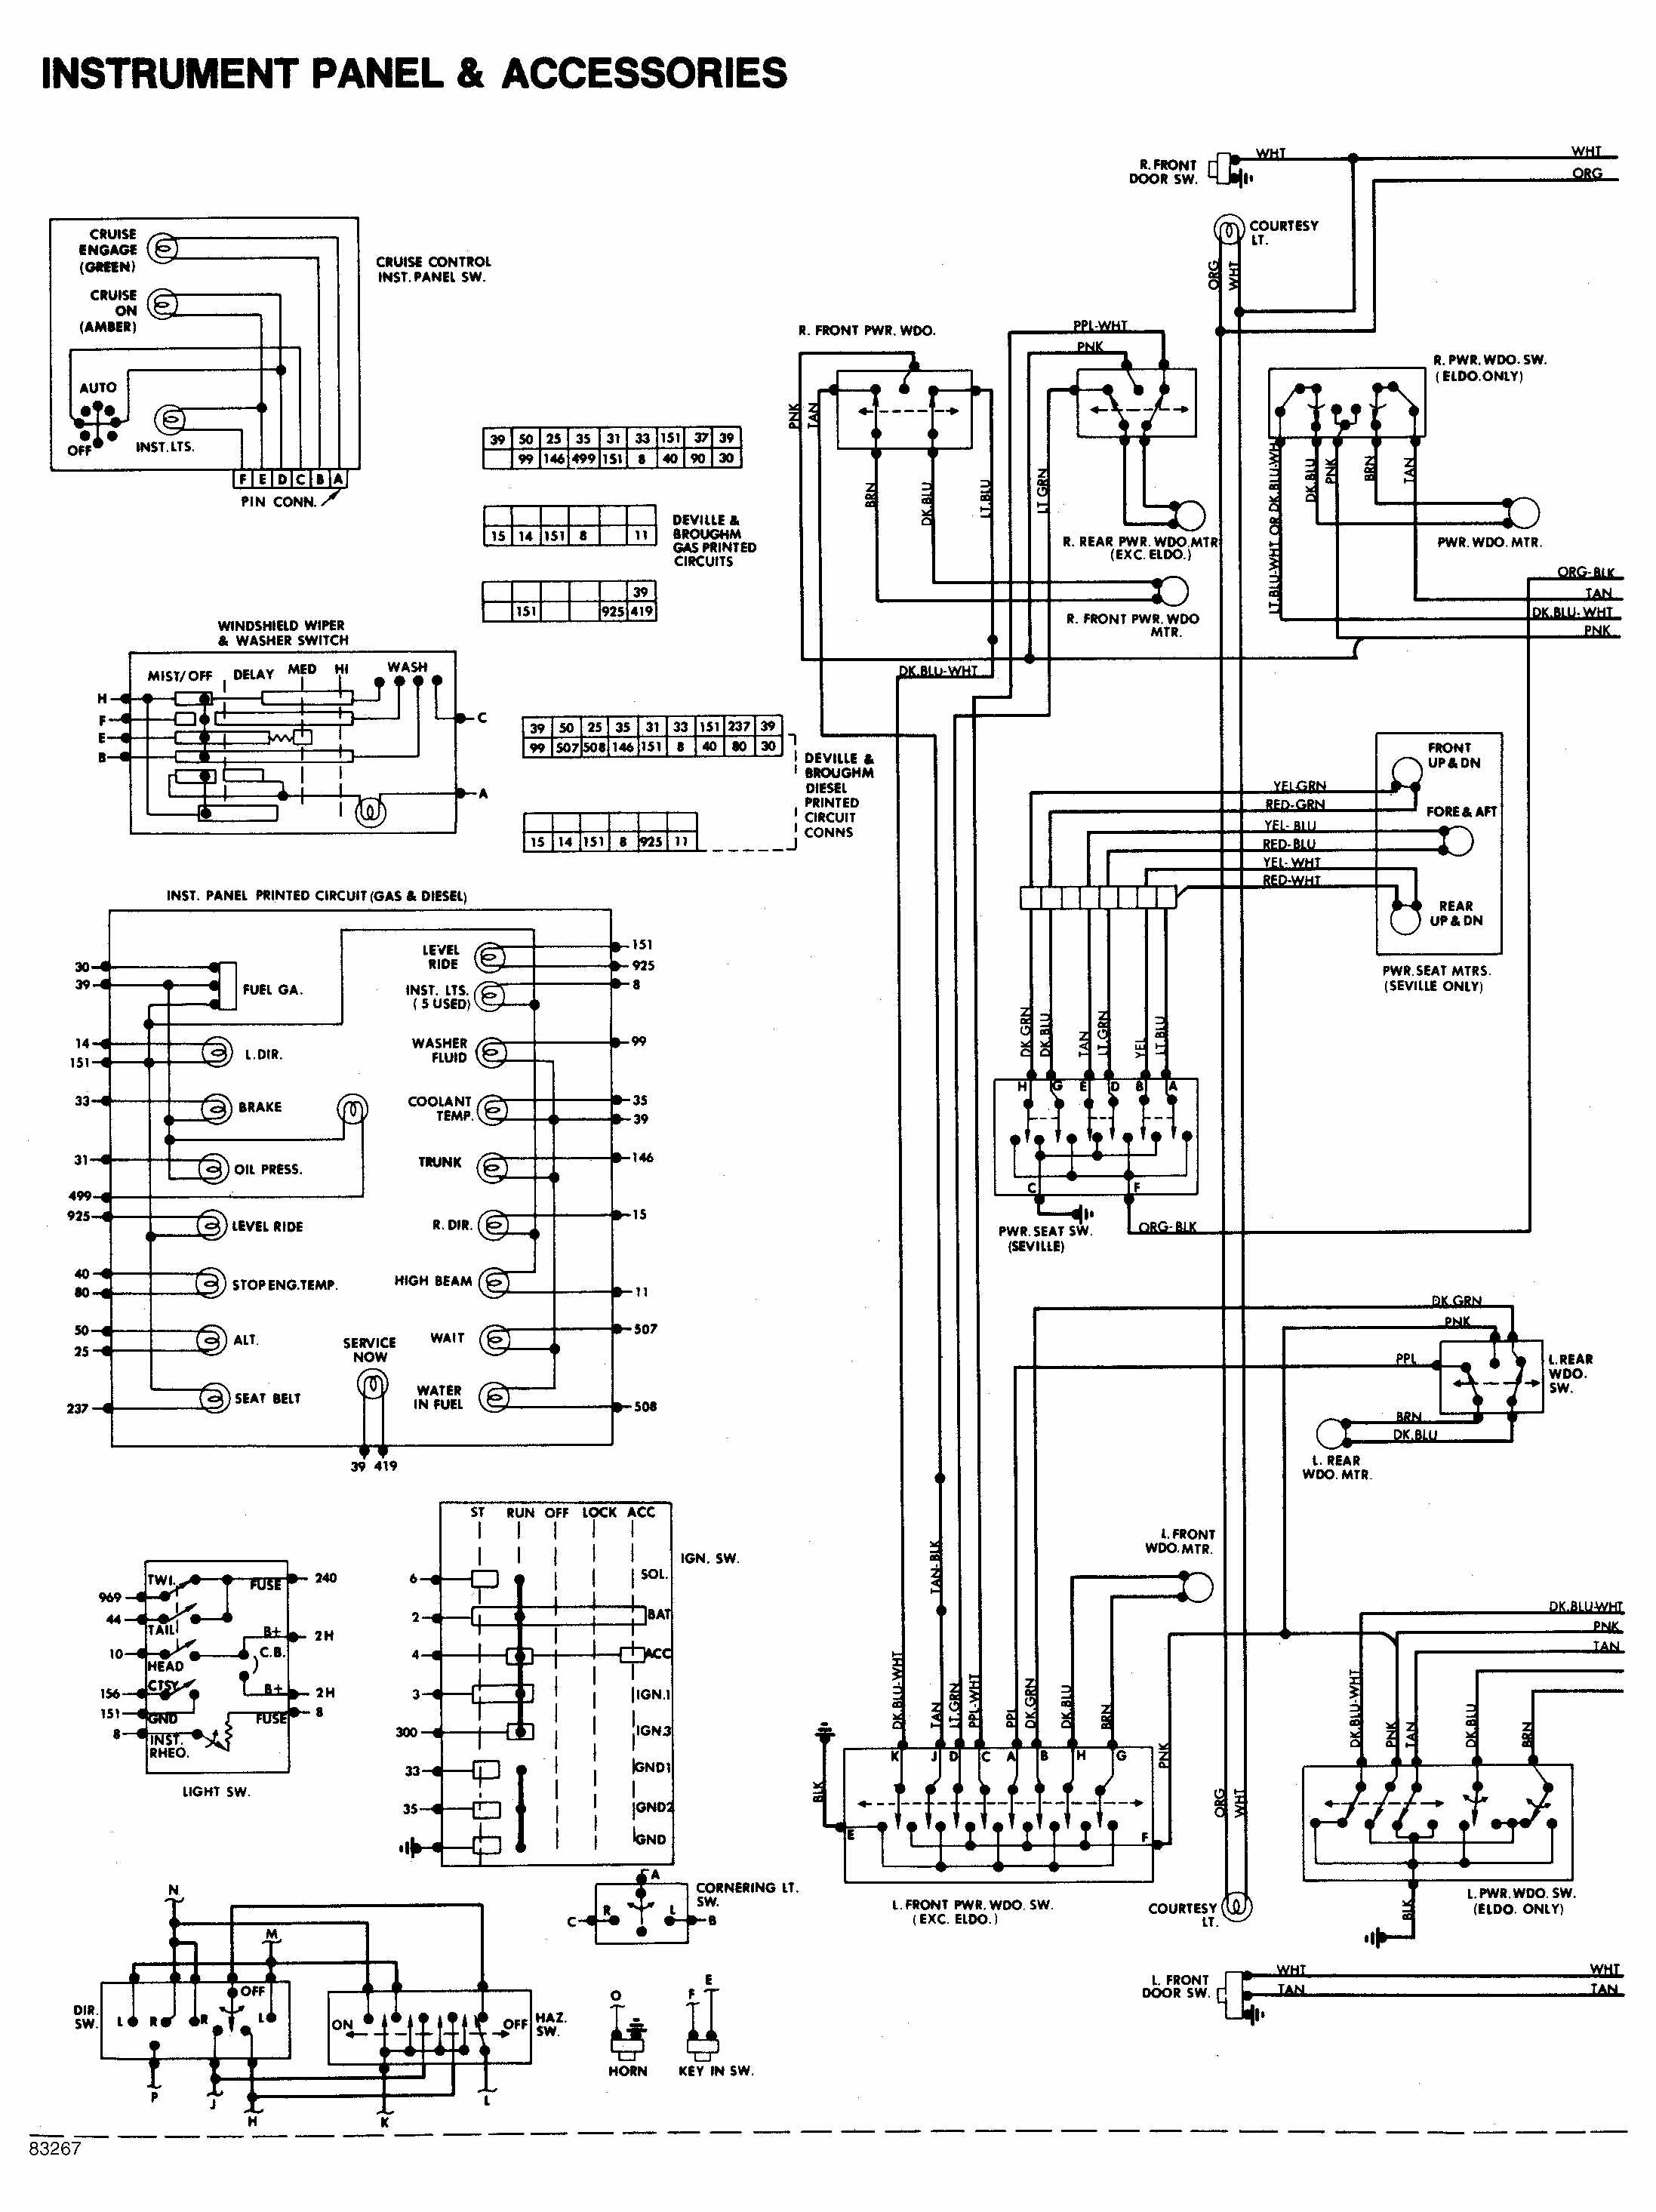 diagram of engine 4 5 liter cadillac wiring diagram for light switch u2022 rh prestonfarmmotors co Ford 5.4 Engine Parts Diagram 1993 F150 Transmission Diagram